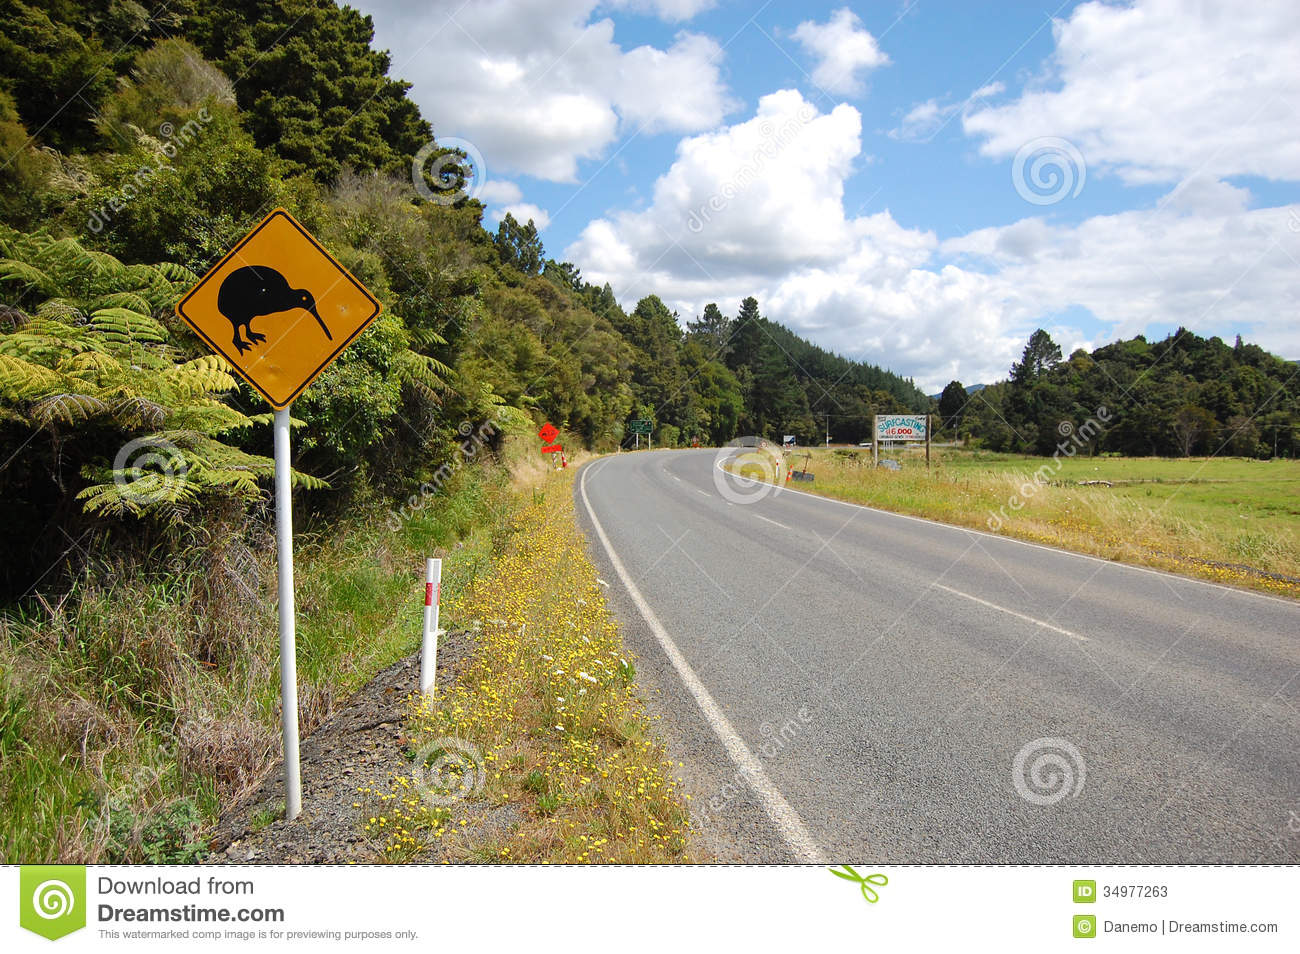 Yellow kiwi bird road sign at roadside